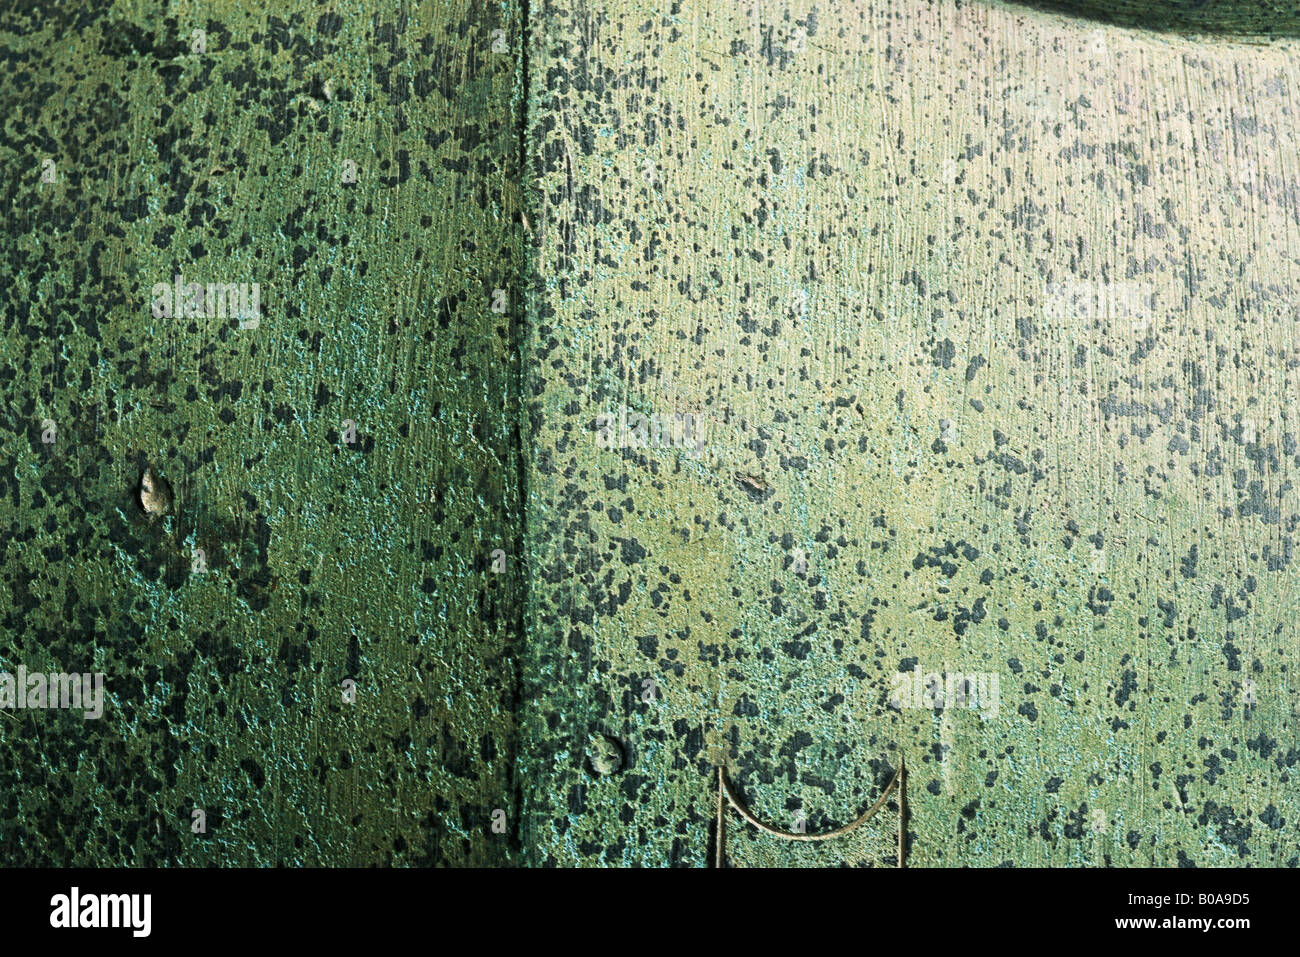 Speckled cement wall, full frame - Stock Image